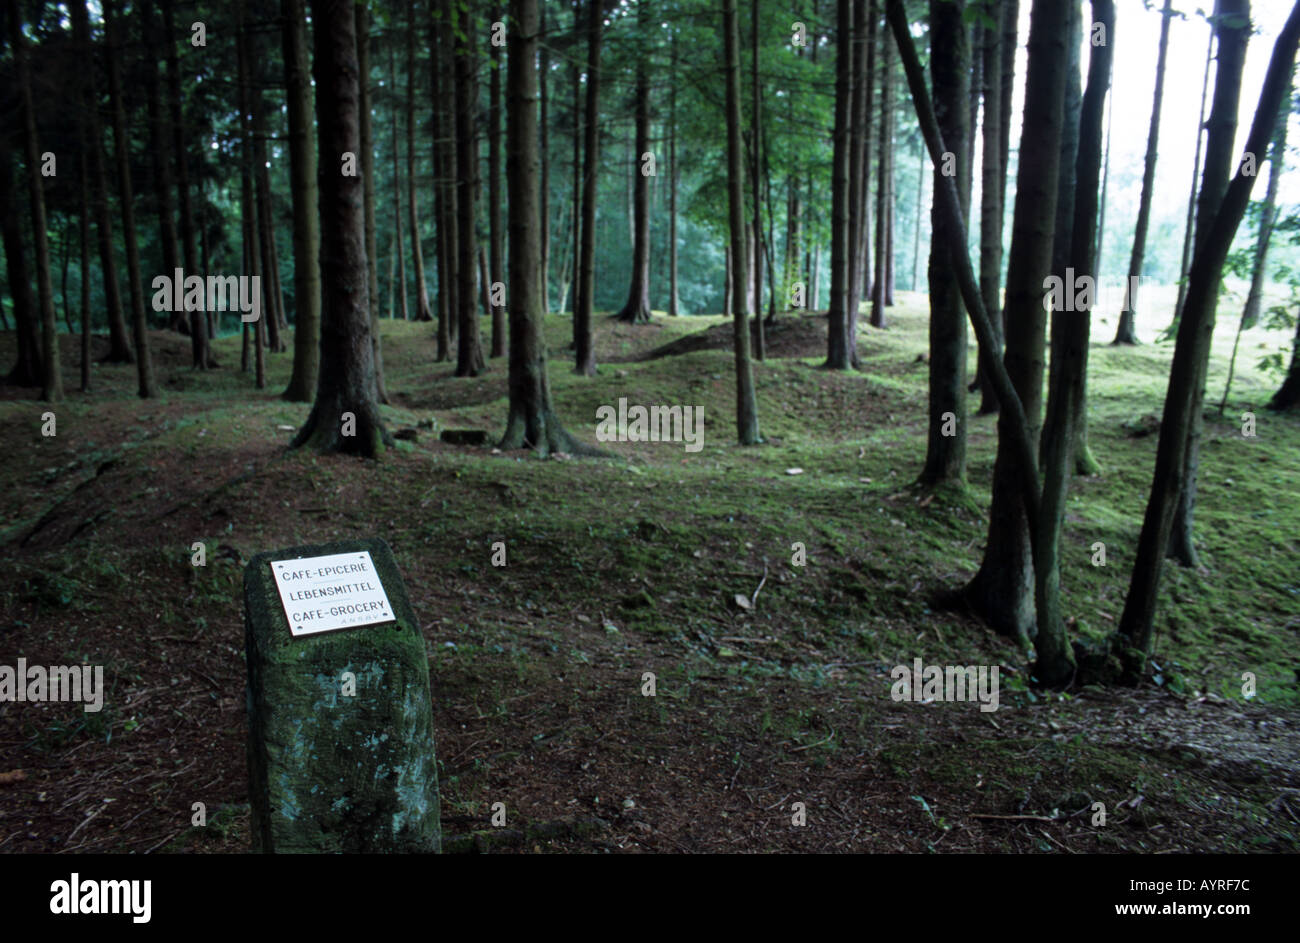 World War One craters at site of village Verdun France - Stock Image